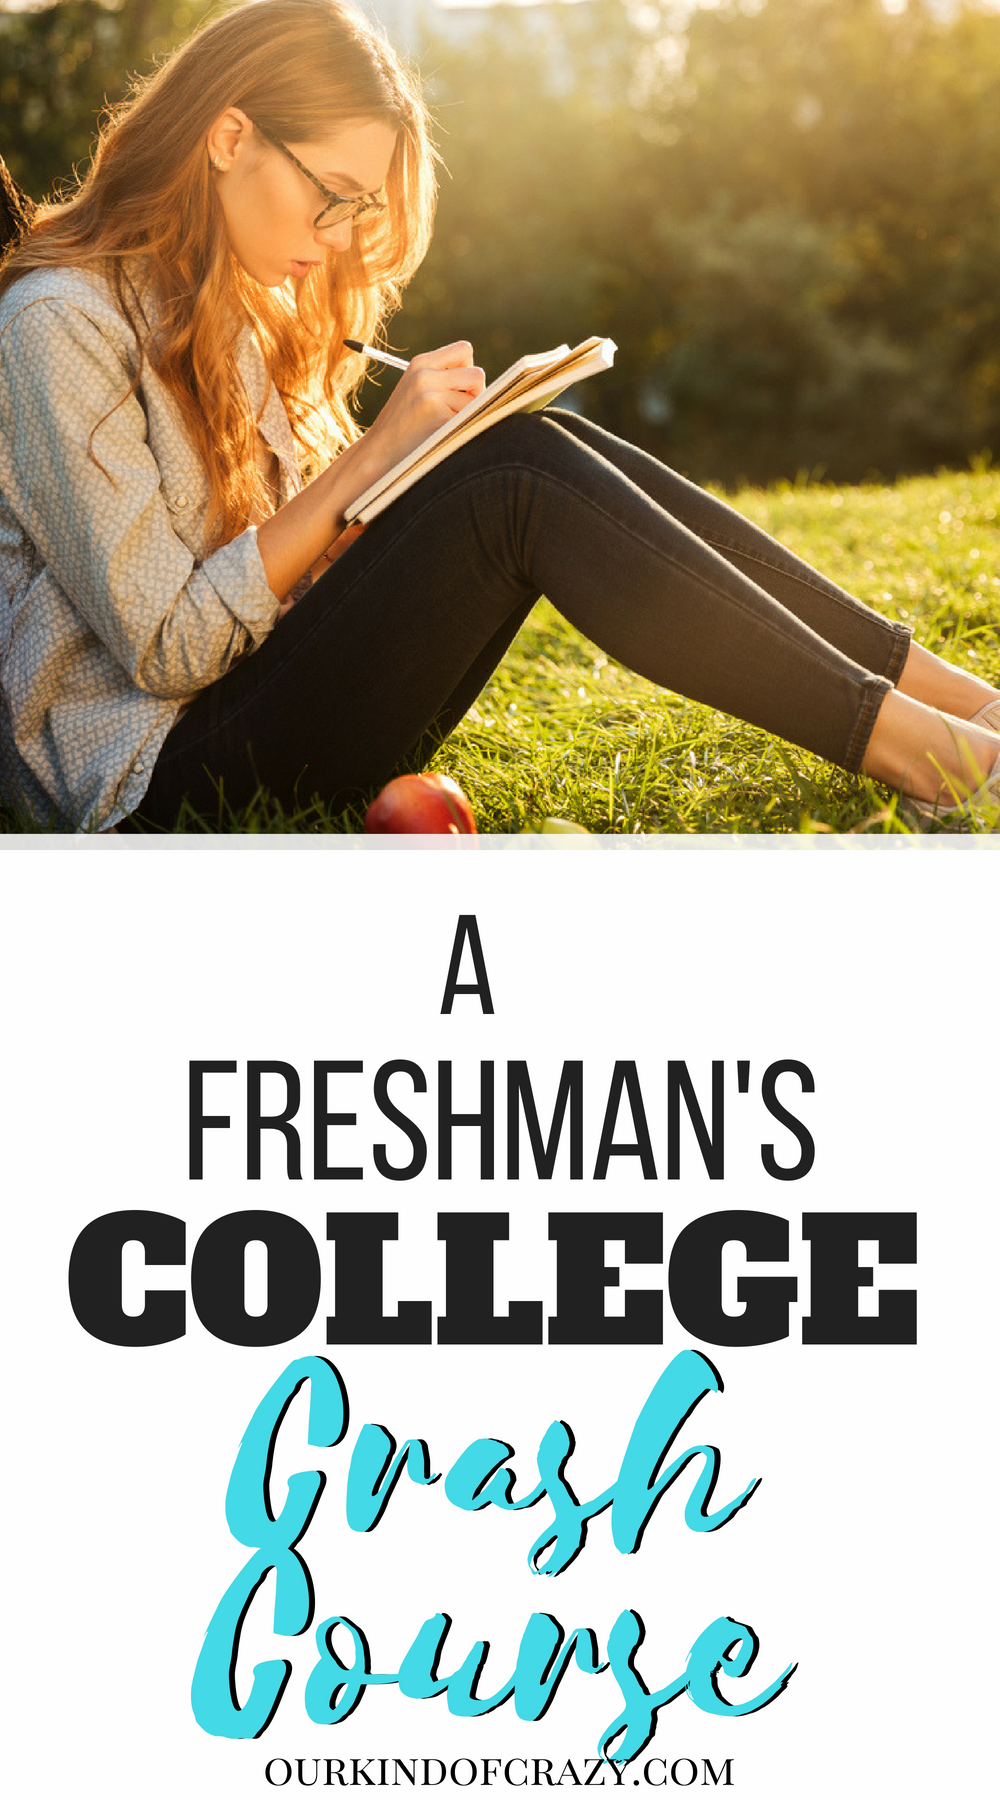 Freshman's College Crash Course. What you need to know before starting college. #collegetips